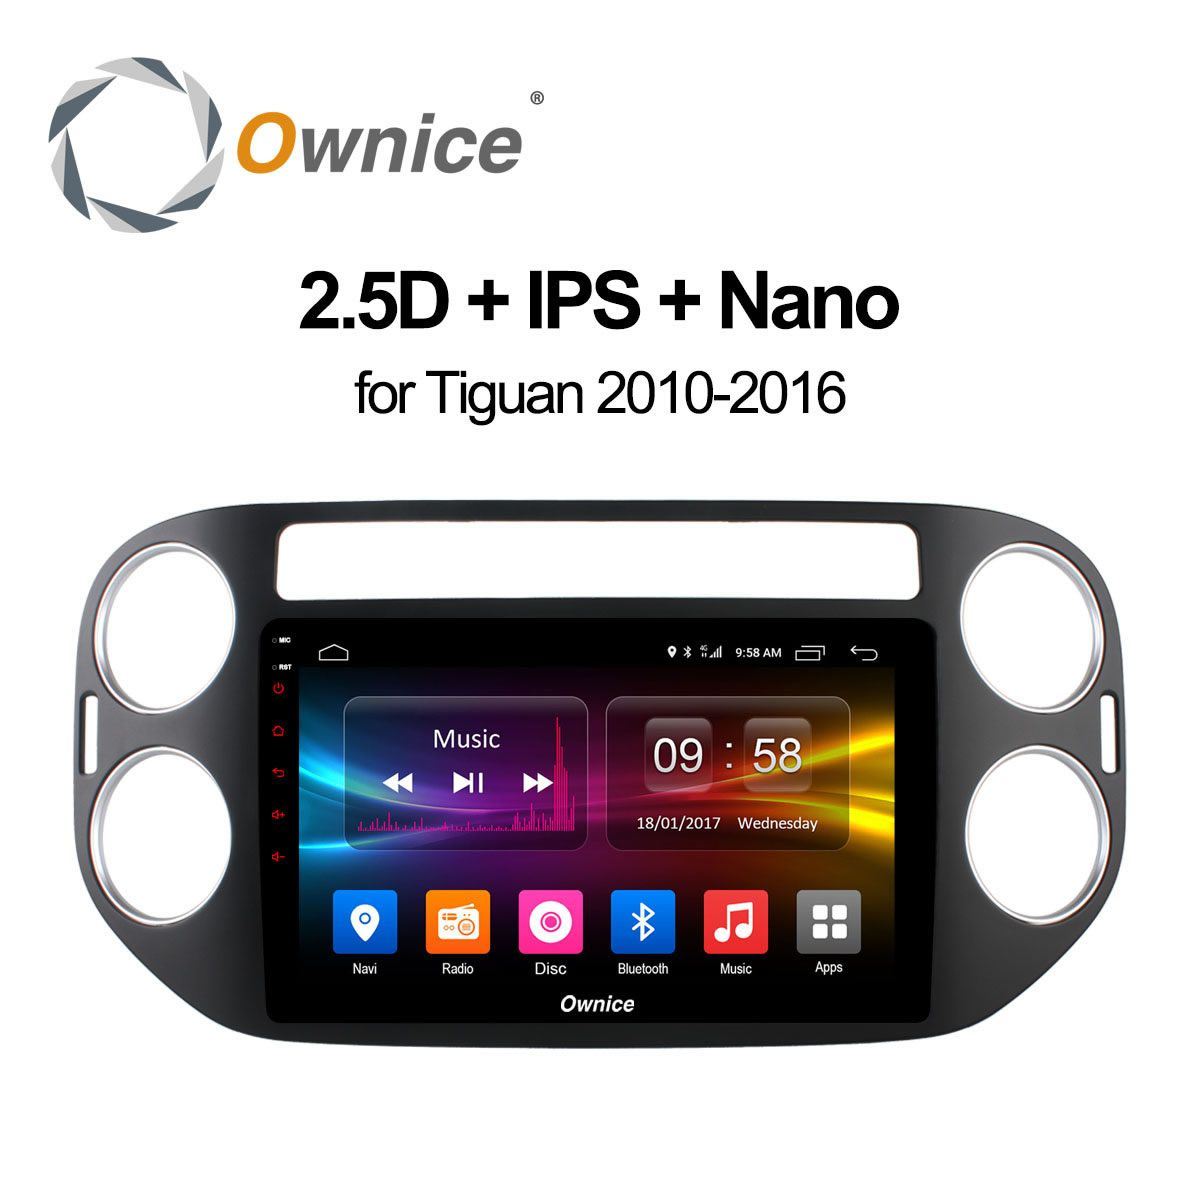 Ownice C500+ Android 6.0 Octa eight core Car radio DVD GPS navi player for Volkswagen tiguan 2010 2011 2012 2013 2014 2015 2016